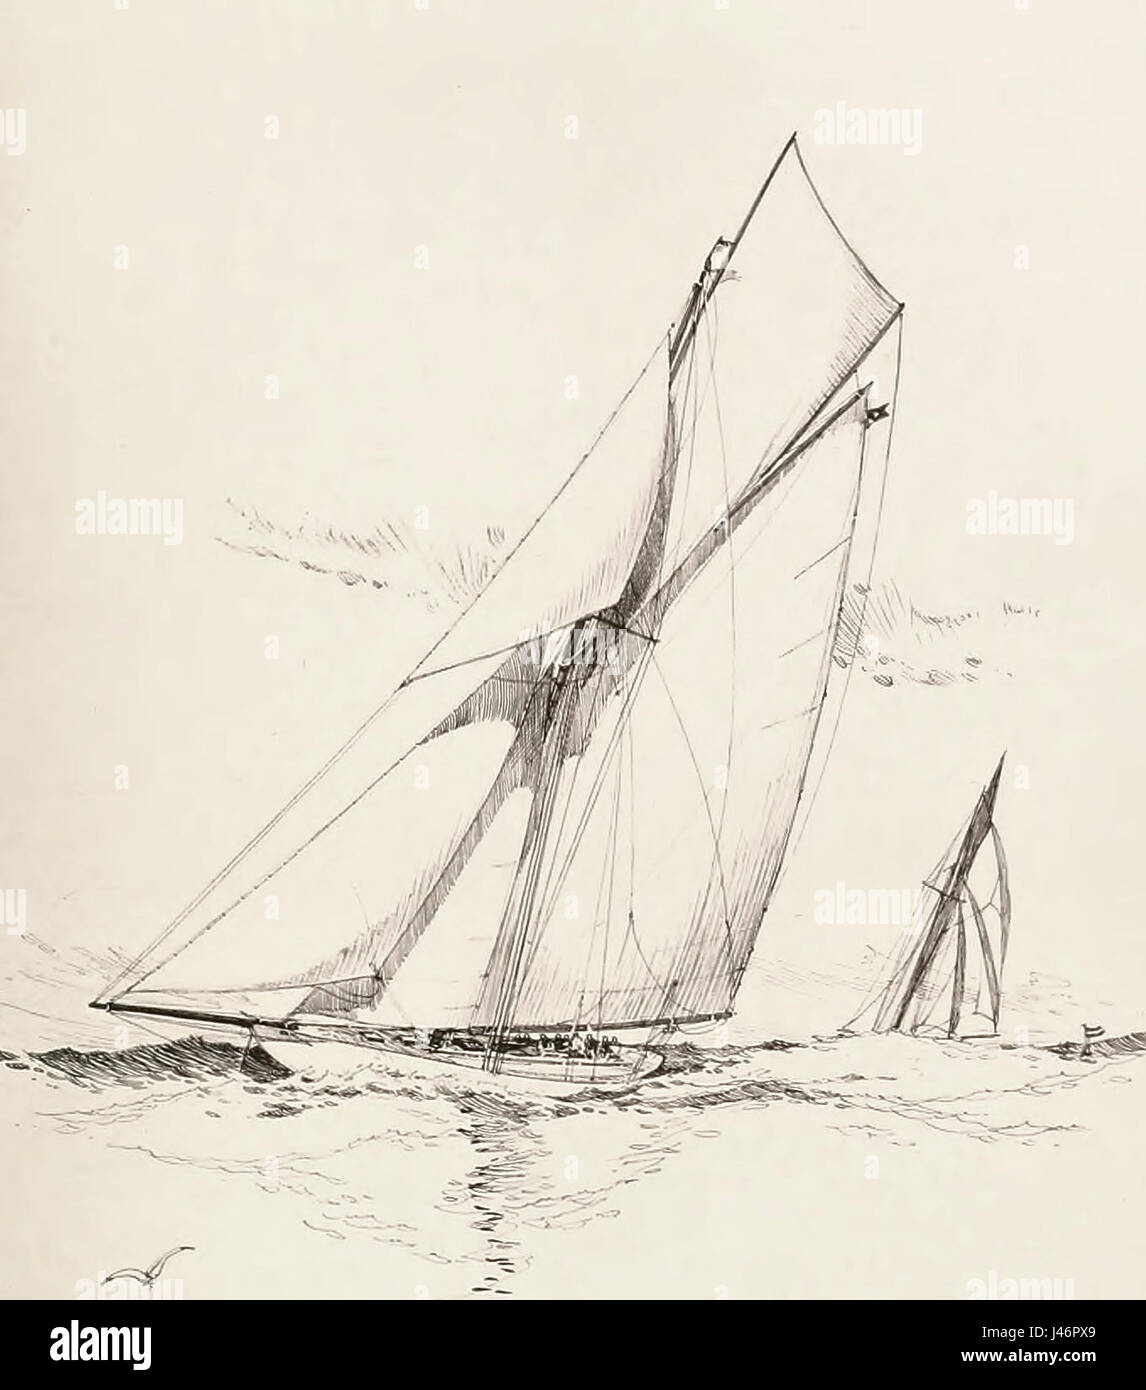 Defender, which sailed in defense of America's Cup in 1895 against Valkyrie III, ninth challenger - Stock Image